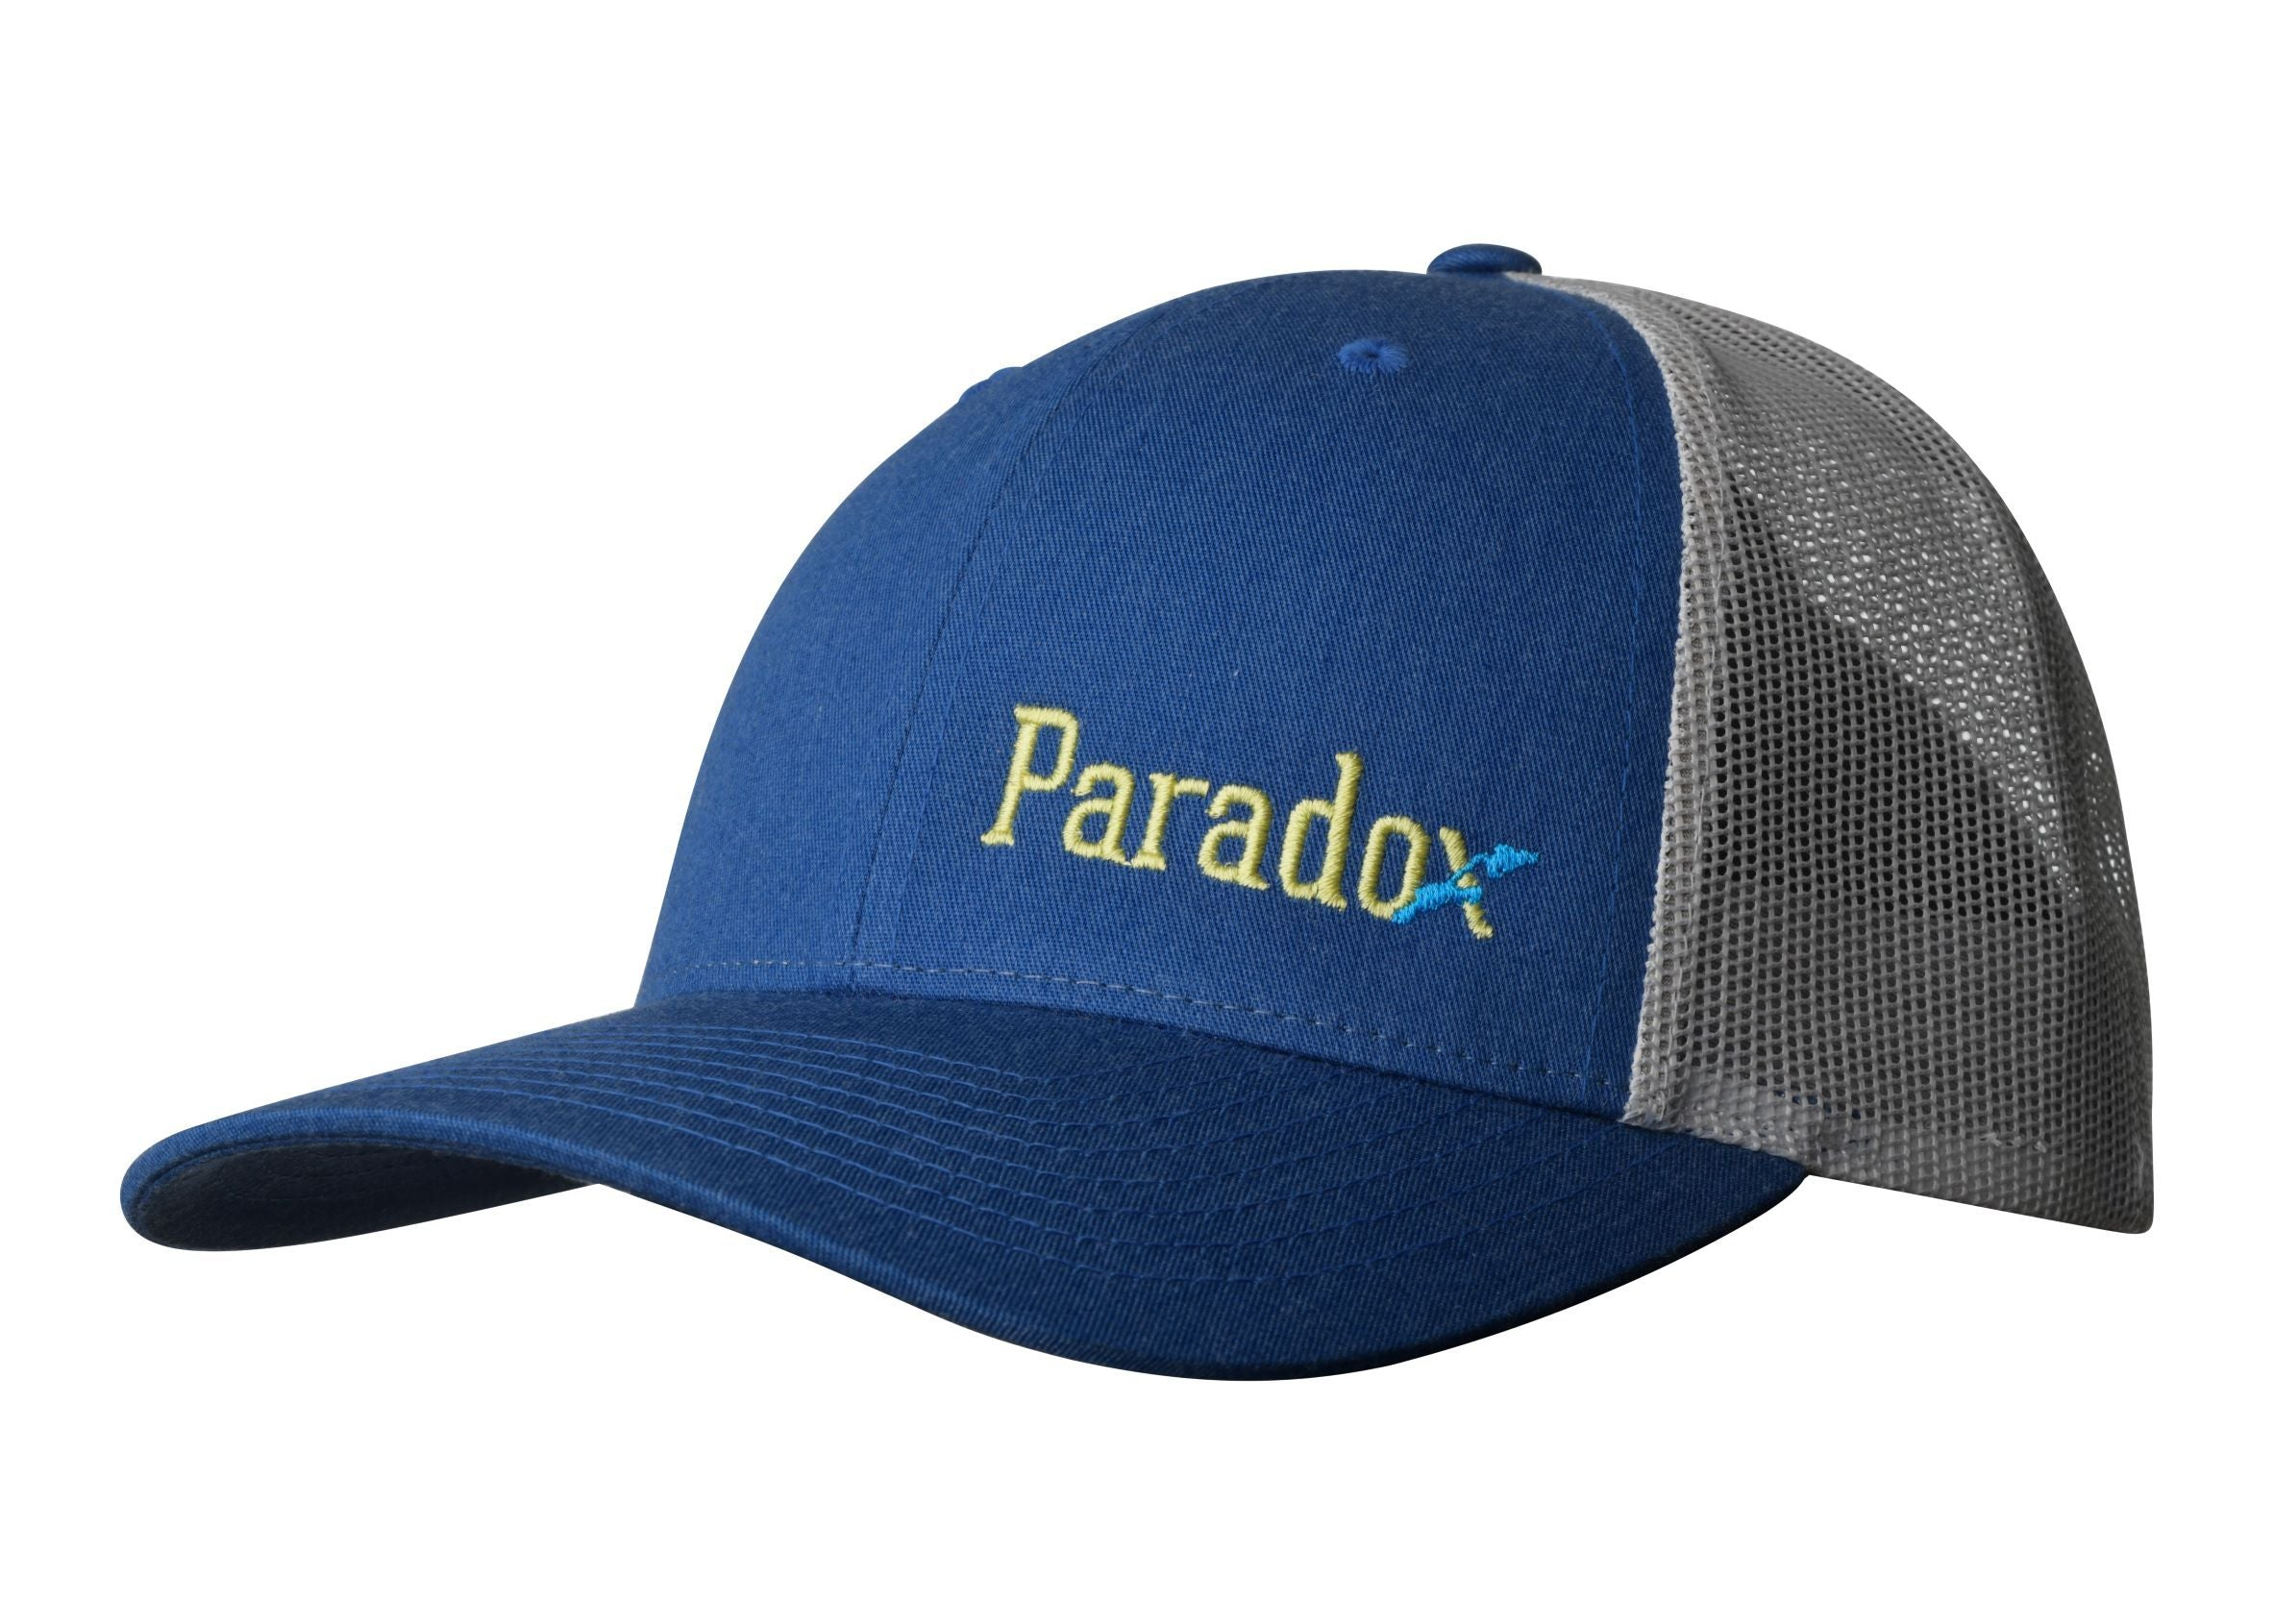 The Paradox Hat